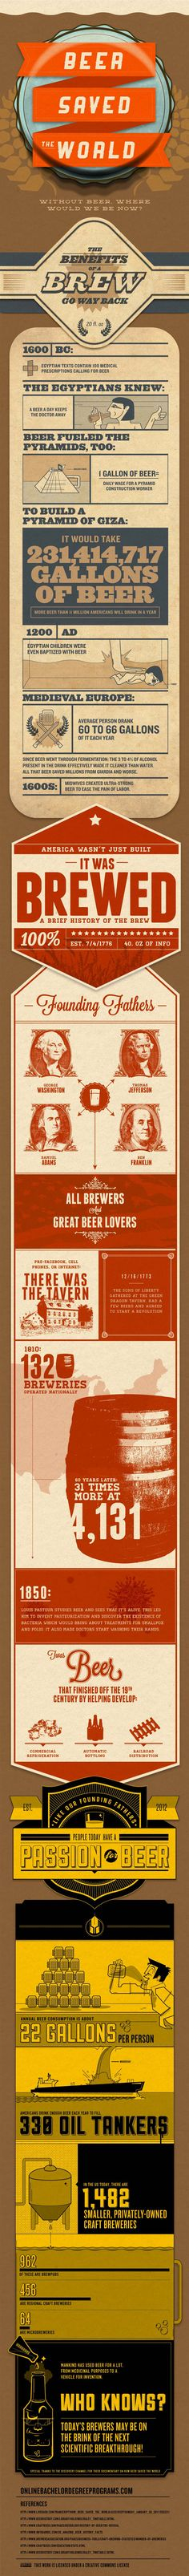 The Miraculous, Magical, Magnificent History Of Beer #Infographic